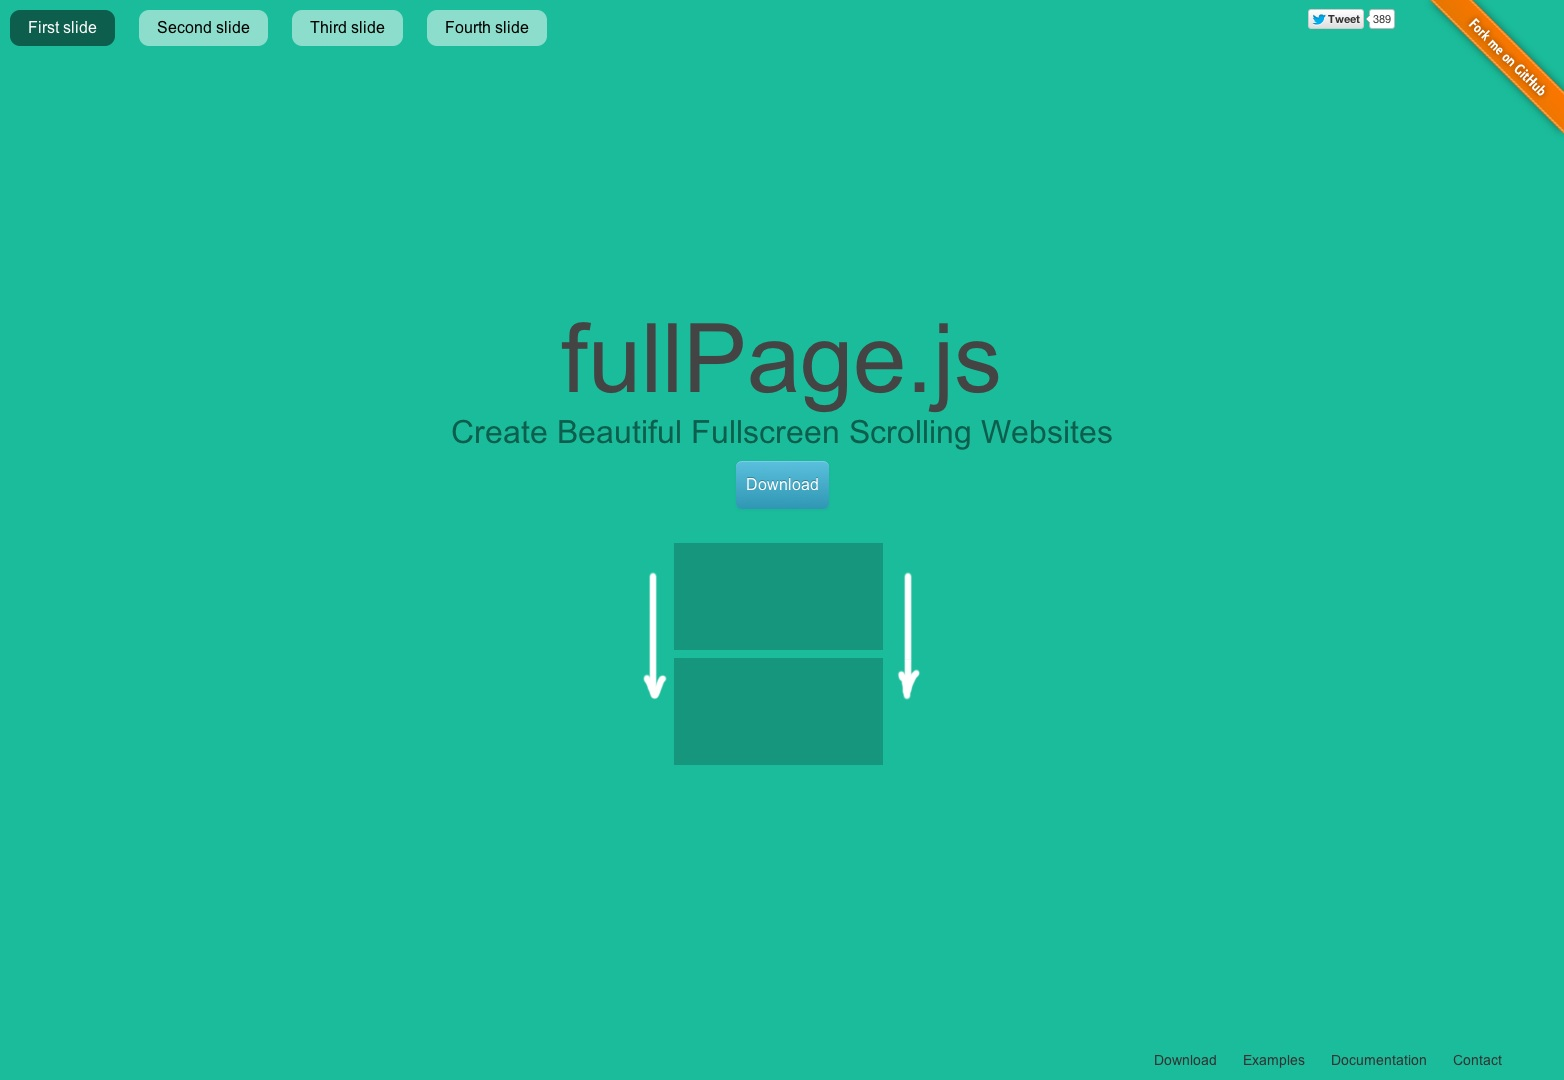 fullPage plugin by Alvaro Trigo. Create fullscreen pages fast and simple. One page scroll like iPhone website.